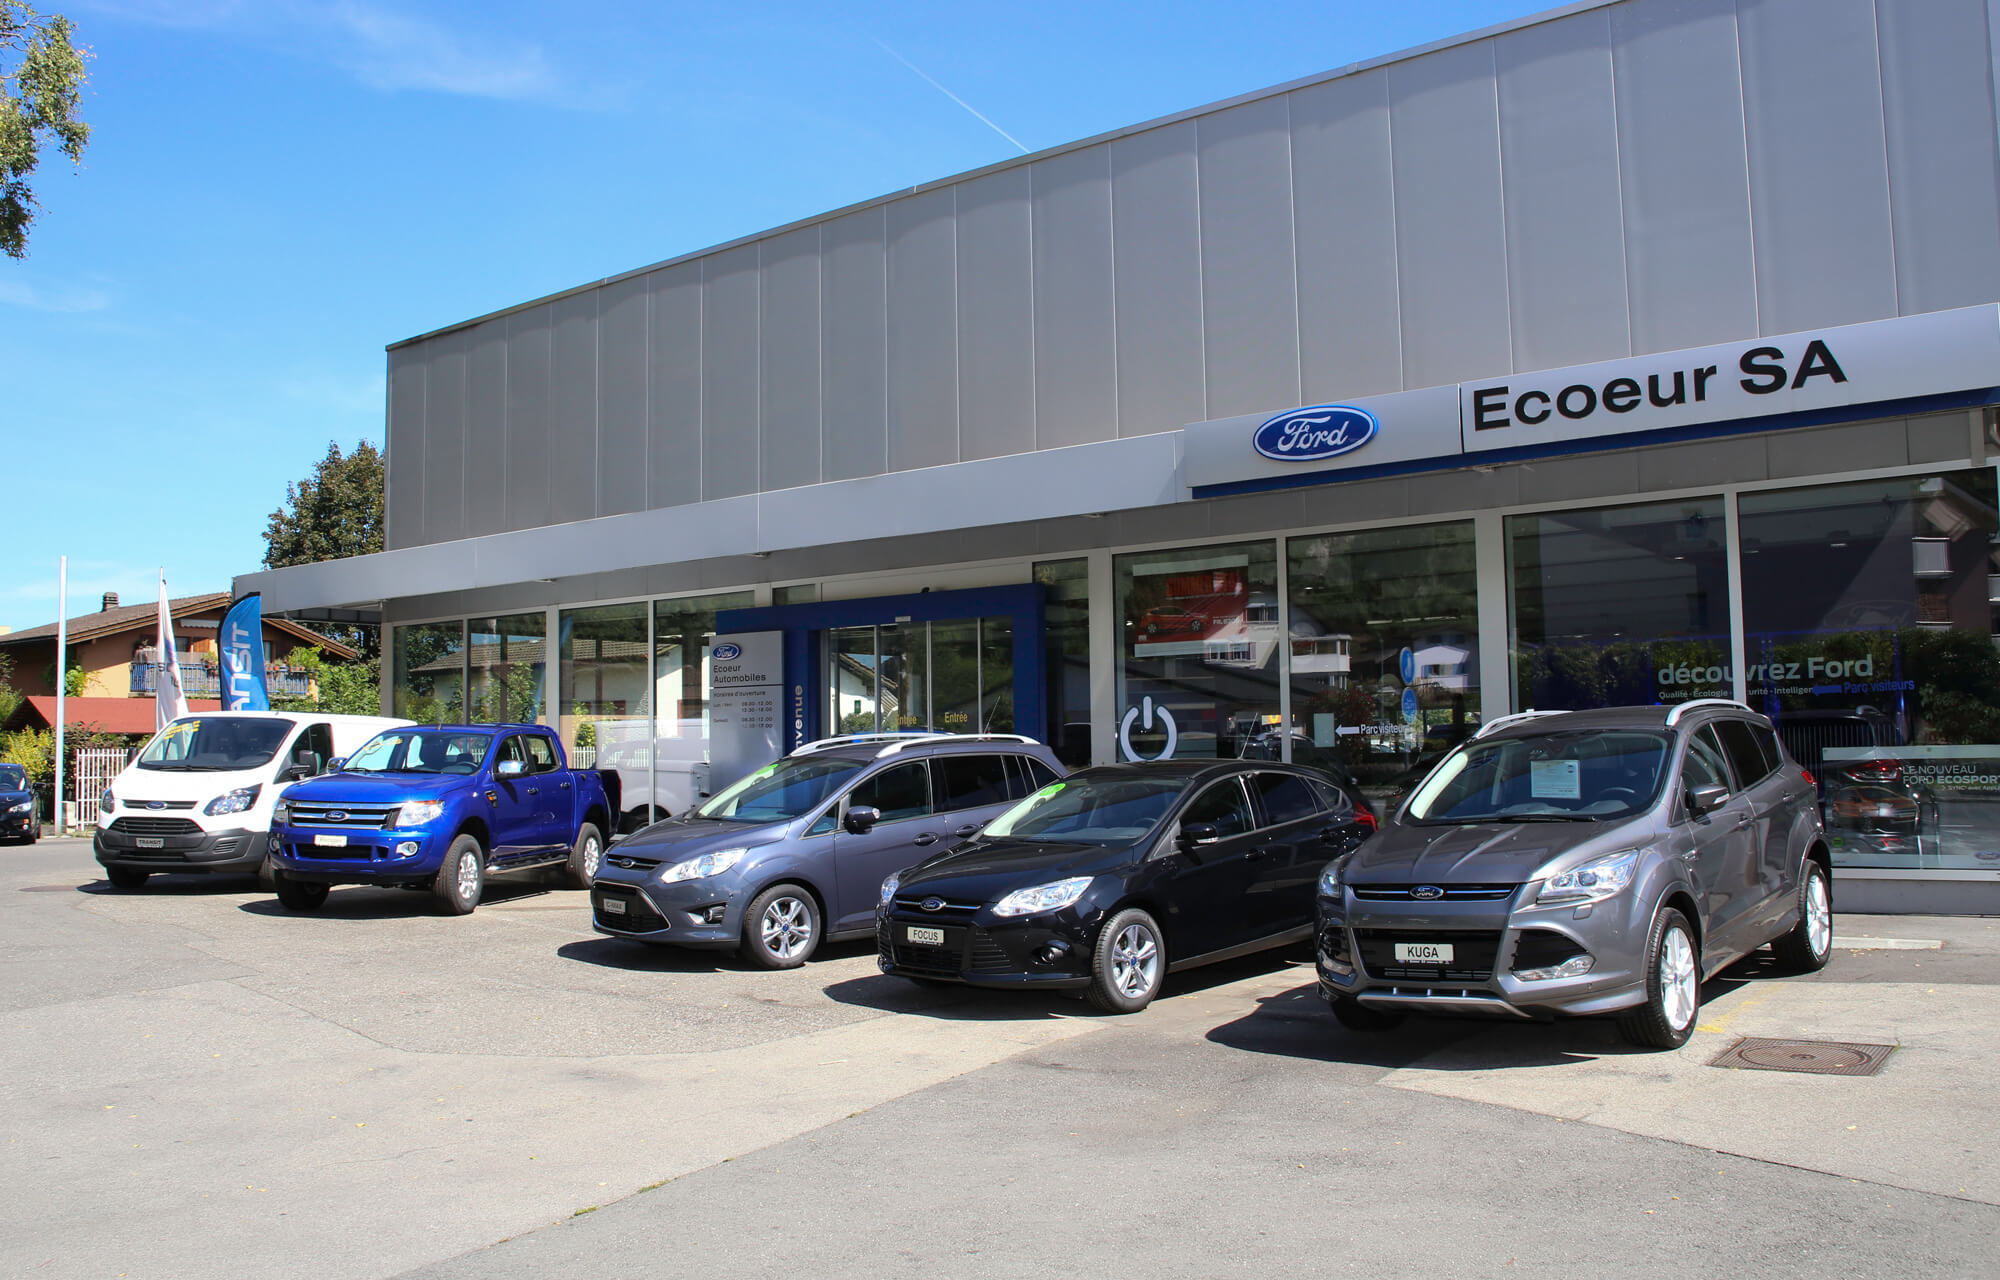 Ford Ecoeur Automobile-Garage Collombey Valais